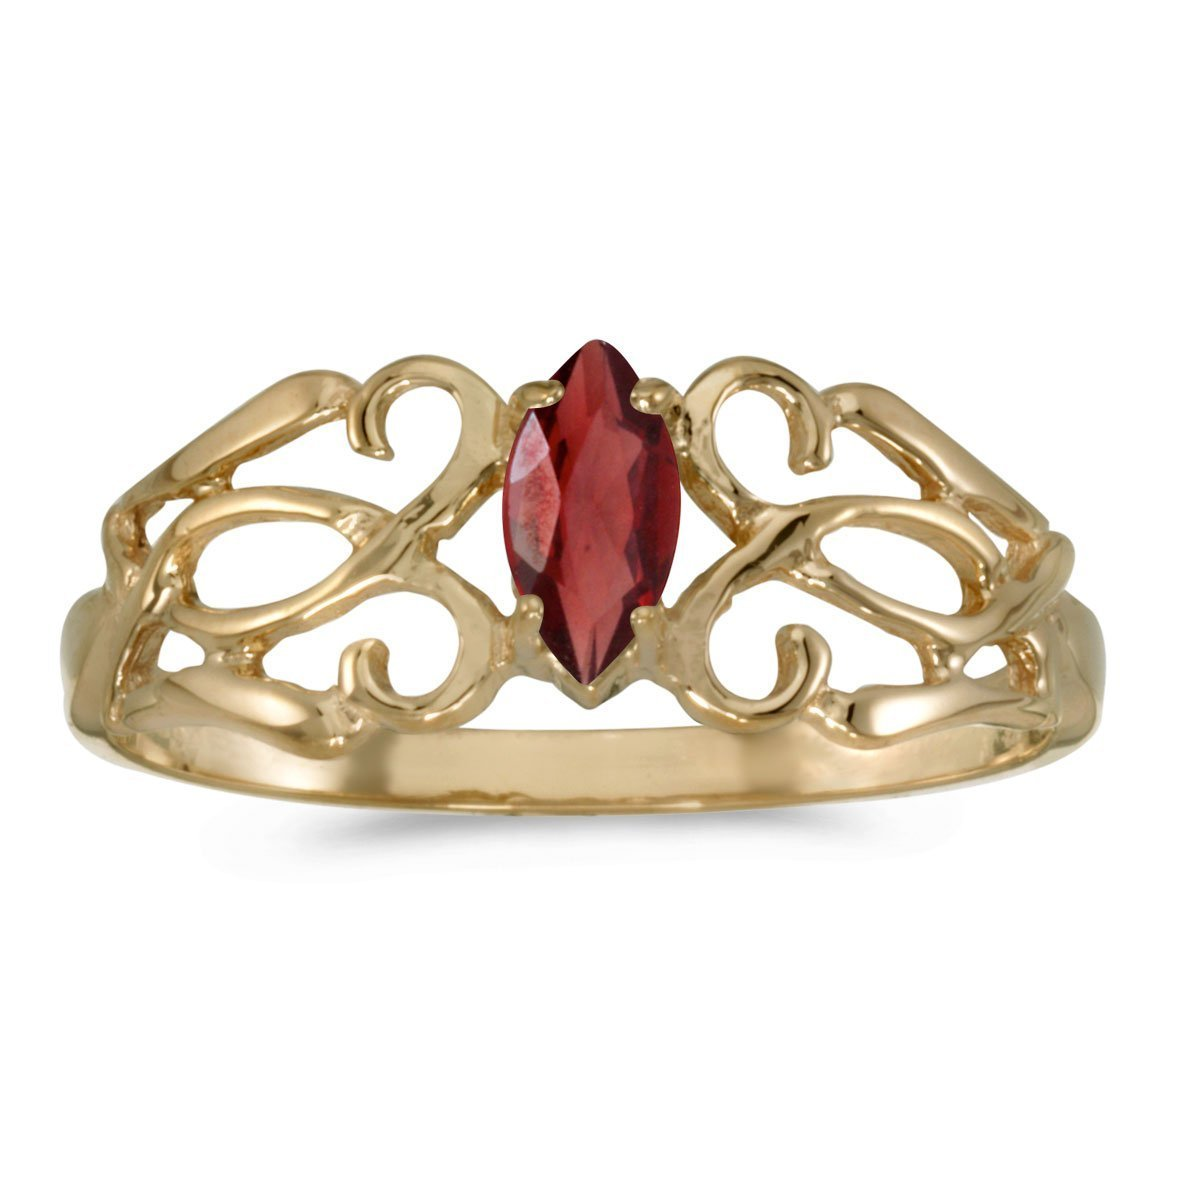 FB Jewels 14k Yellow Gold Genuine Red Birthstone Solitaire Marquise Garnet Filagree Wedding Engagement Statement Ring - Size 11 (1/4 Cttw.)